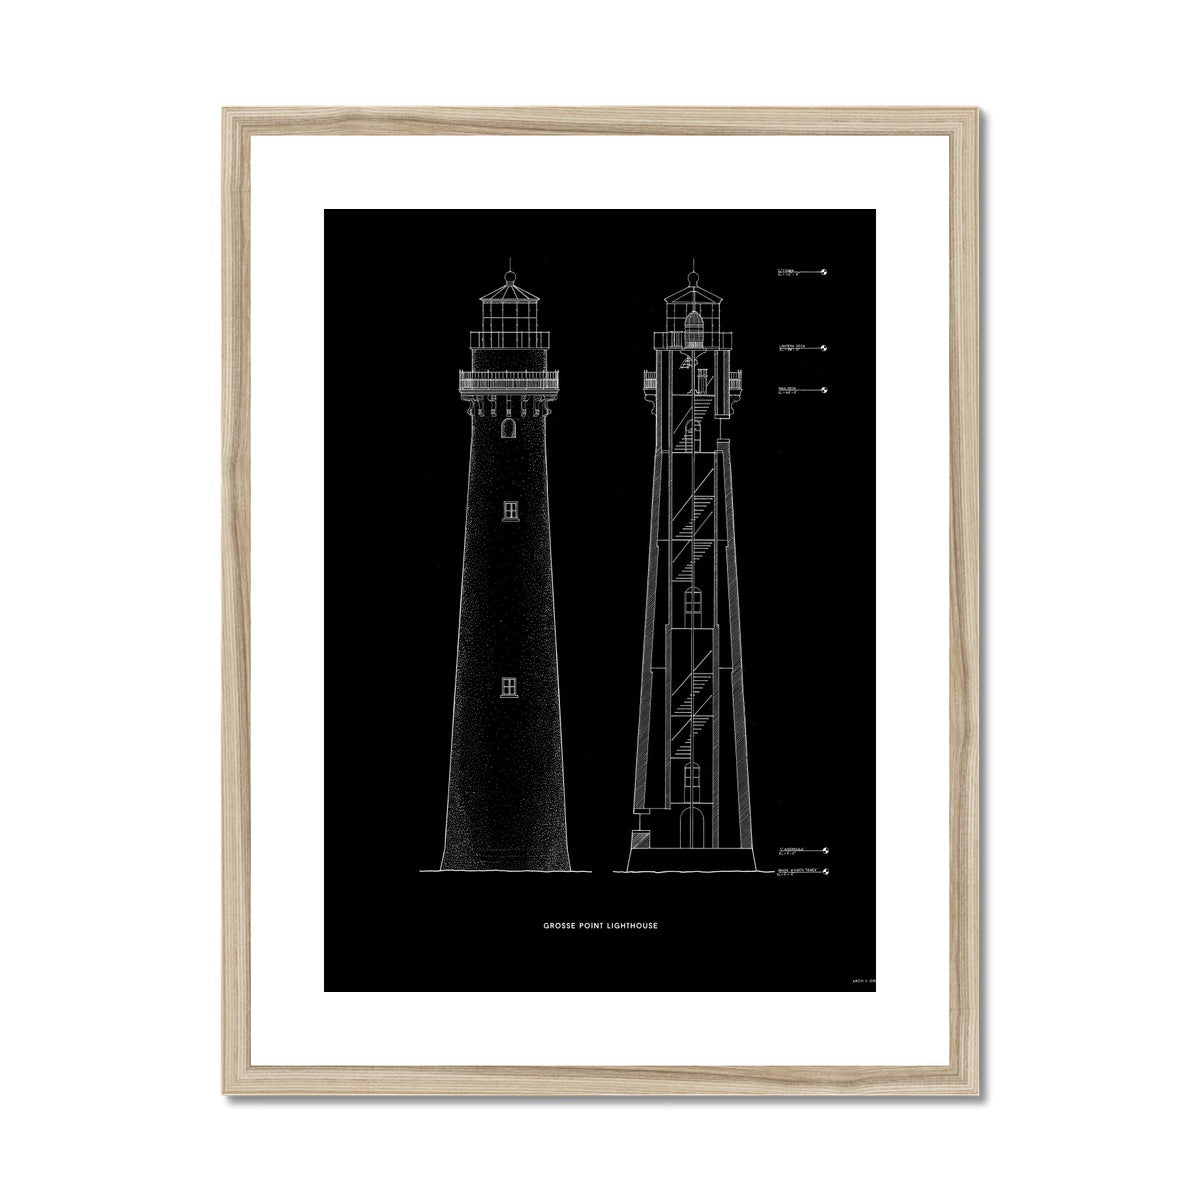 Grosse Point Lighthouse - East Elevation and Cross Section - Black -  Framed & Mounted Print